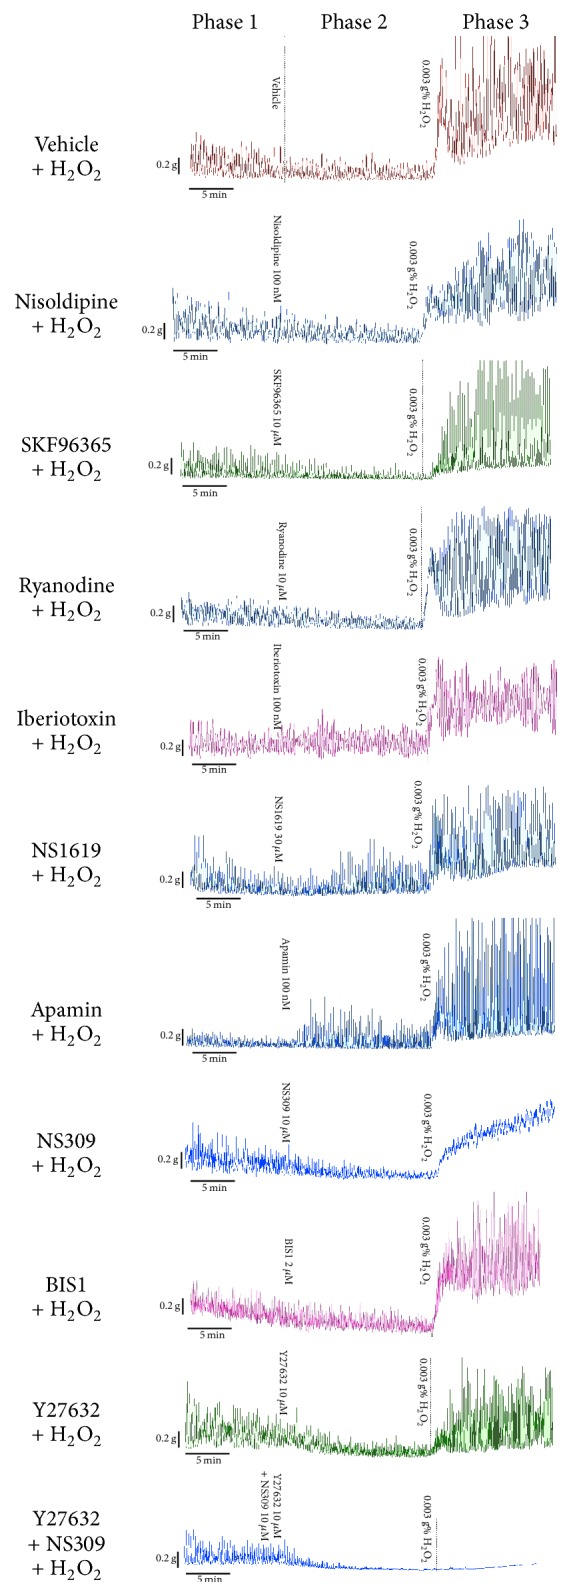 Representative tracings of spontaneous contractions of intact rat bladder strips before (Phase 1) and during (Phase 2) treatment with vehicle (0.1% DMSO) or test agent [nisoldipine (100 nM), SKF96365 (10 μ M), ryanodine (10 μ M), iberiotoxin (100 nM), NS1619 (30 μ M), apamin (100 nM), NS309 (10 μ M), Y27632 (10 μ M), BIS-1 (2 μ M), and Y27632 + NS309 (each 10 μ M)] and then incubated with 0.003 g% H 2 O 2 (Phase 3).